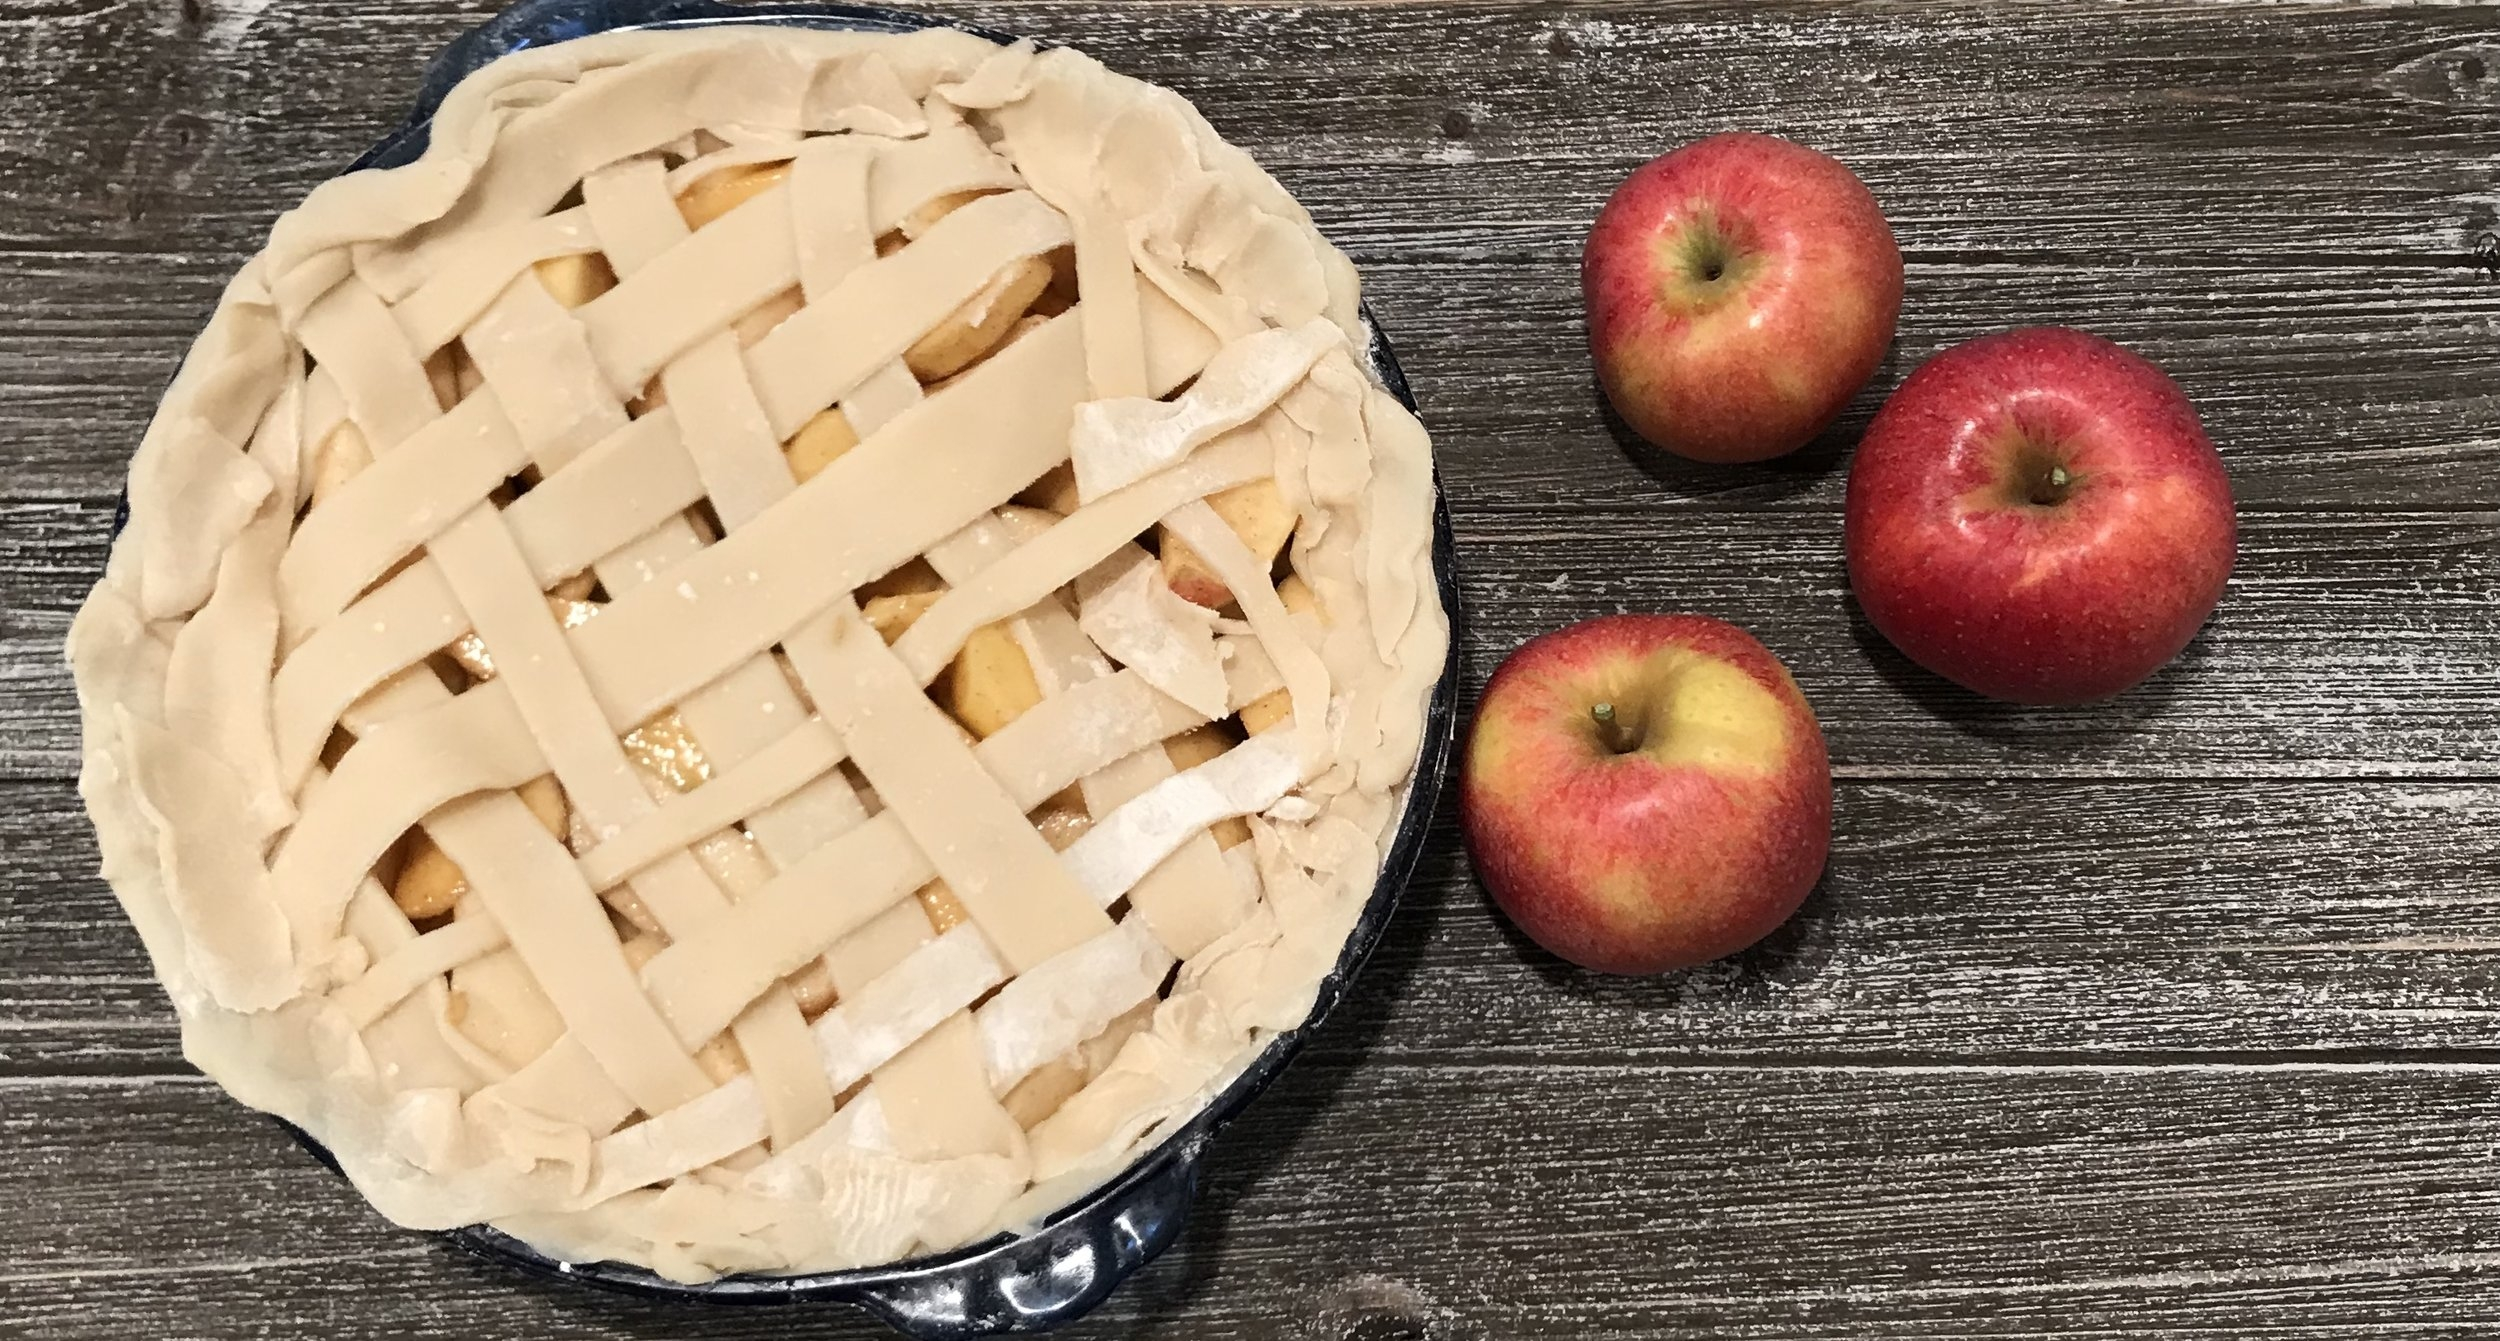 baking temperature and duration can be found on your pie crust box